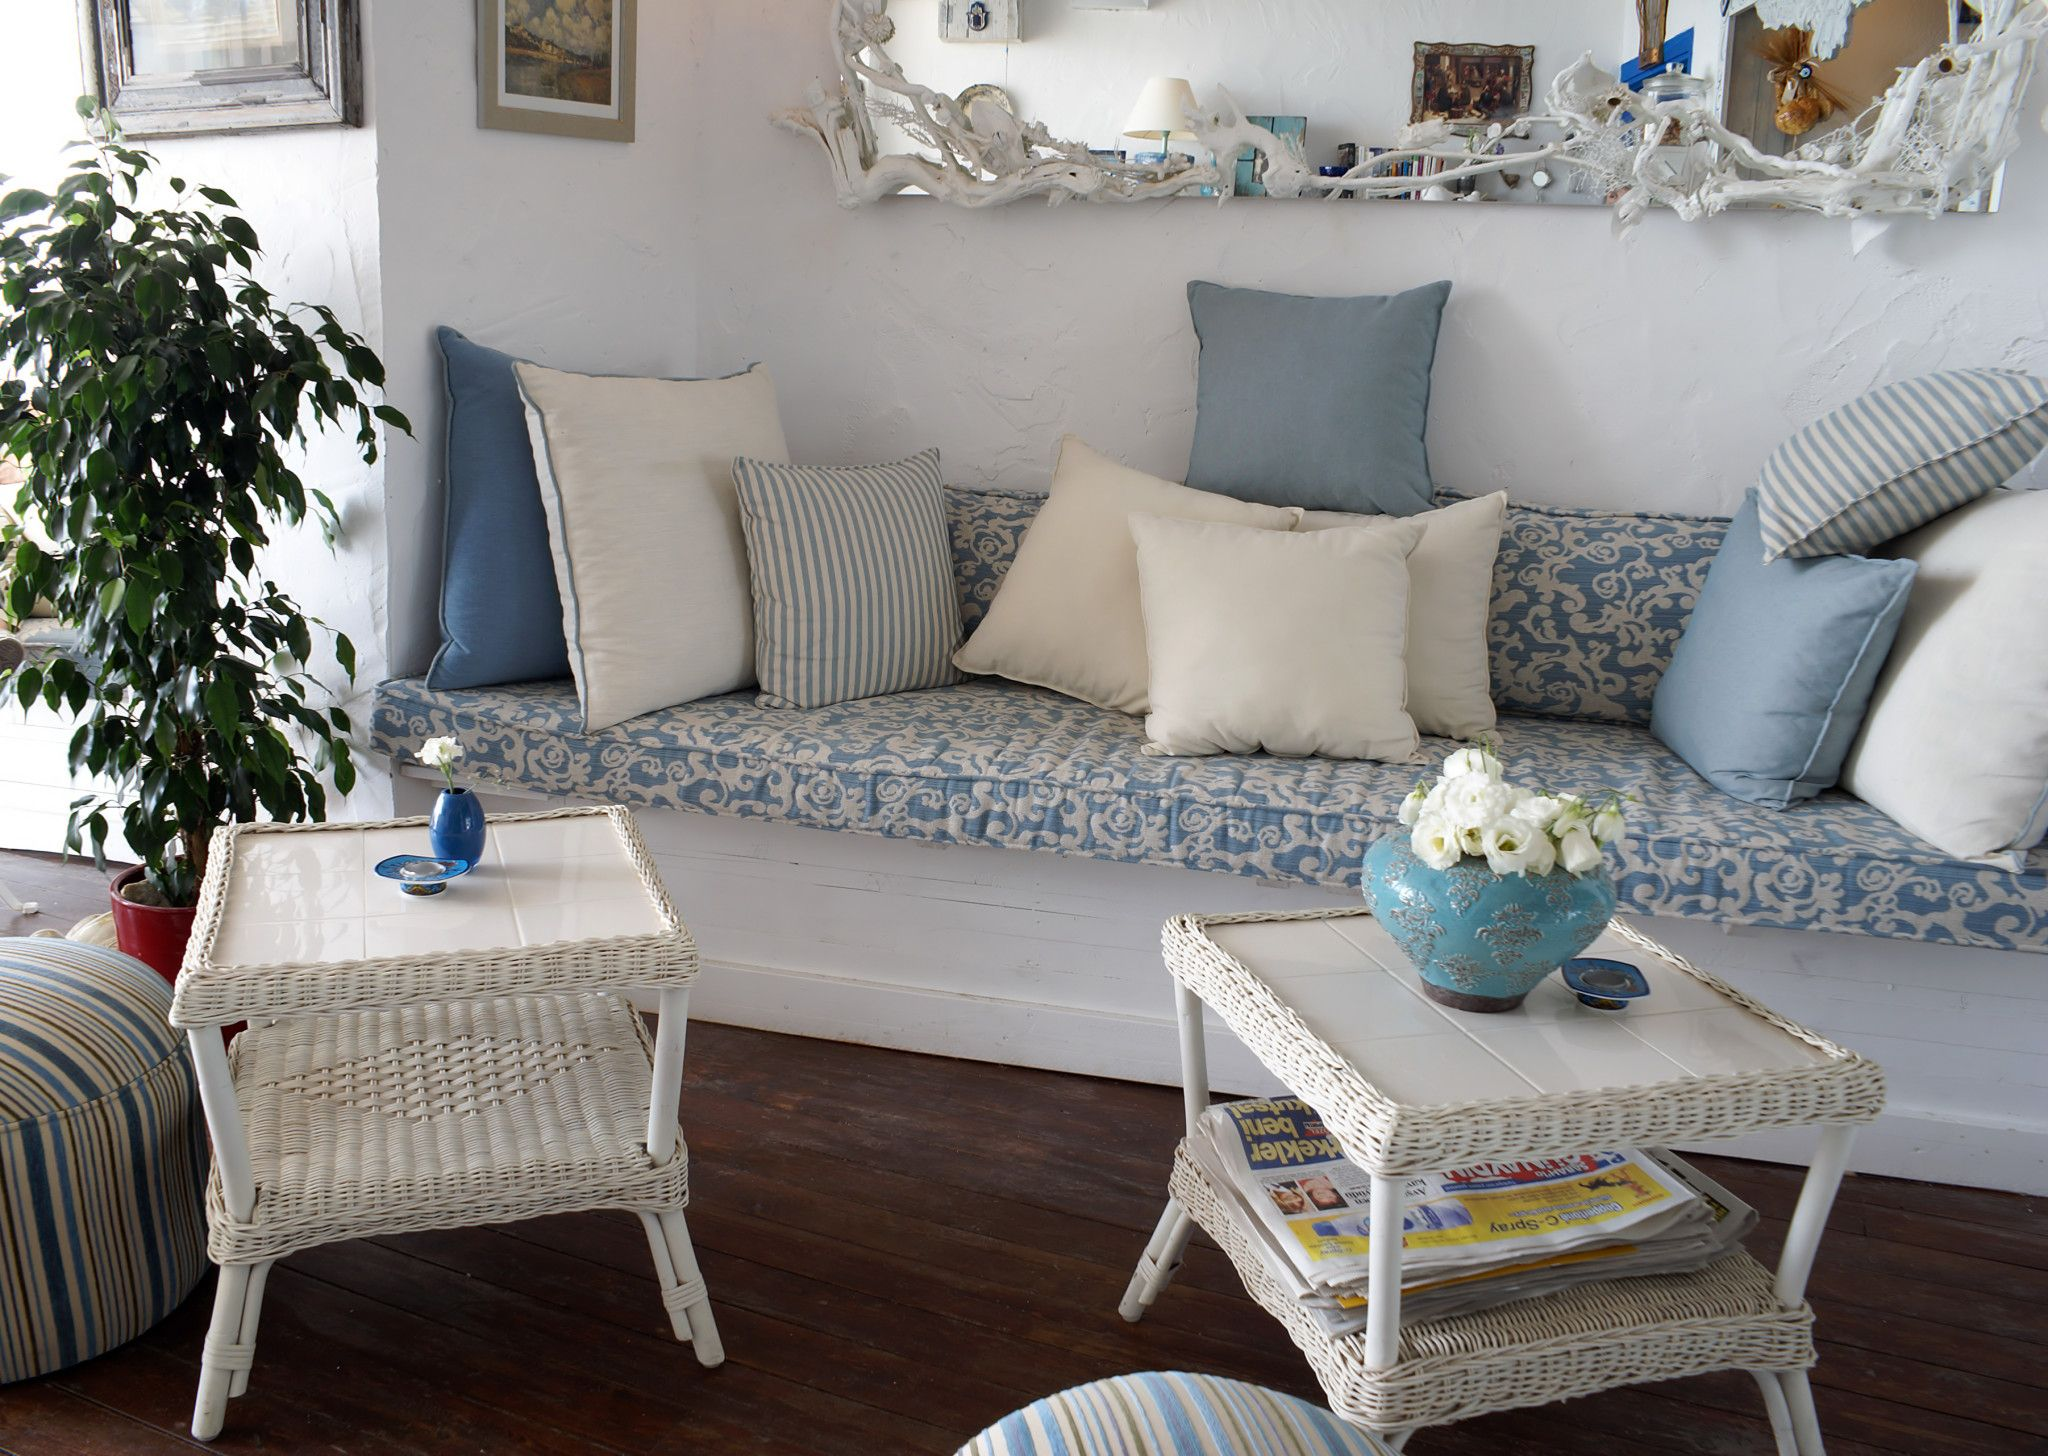 provence interior design style calm and fresh rural provence style in the interior with marine blue motifs and a lot